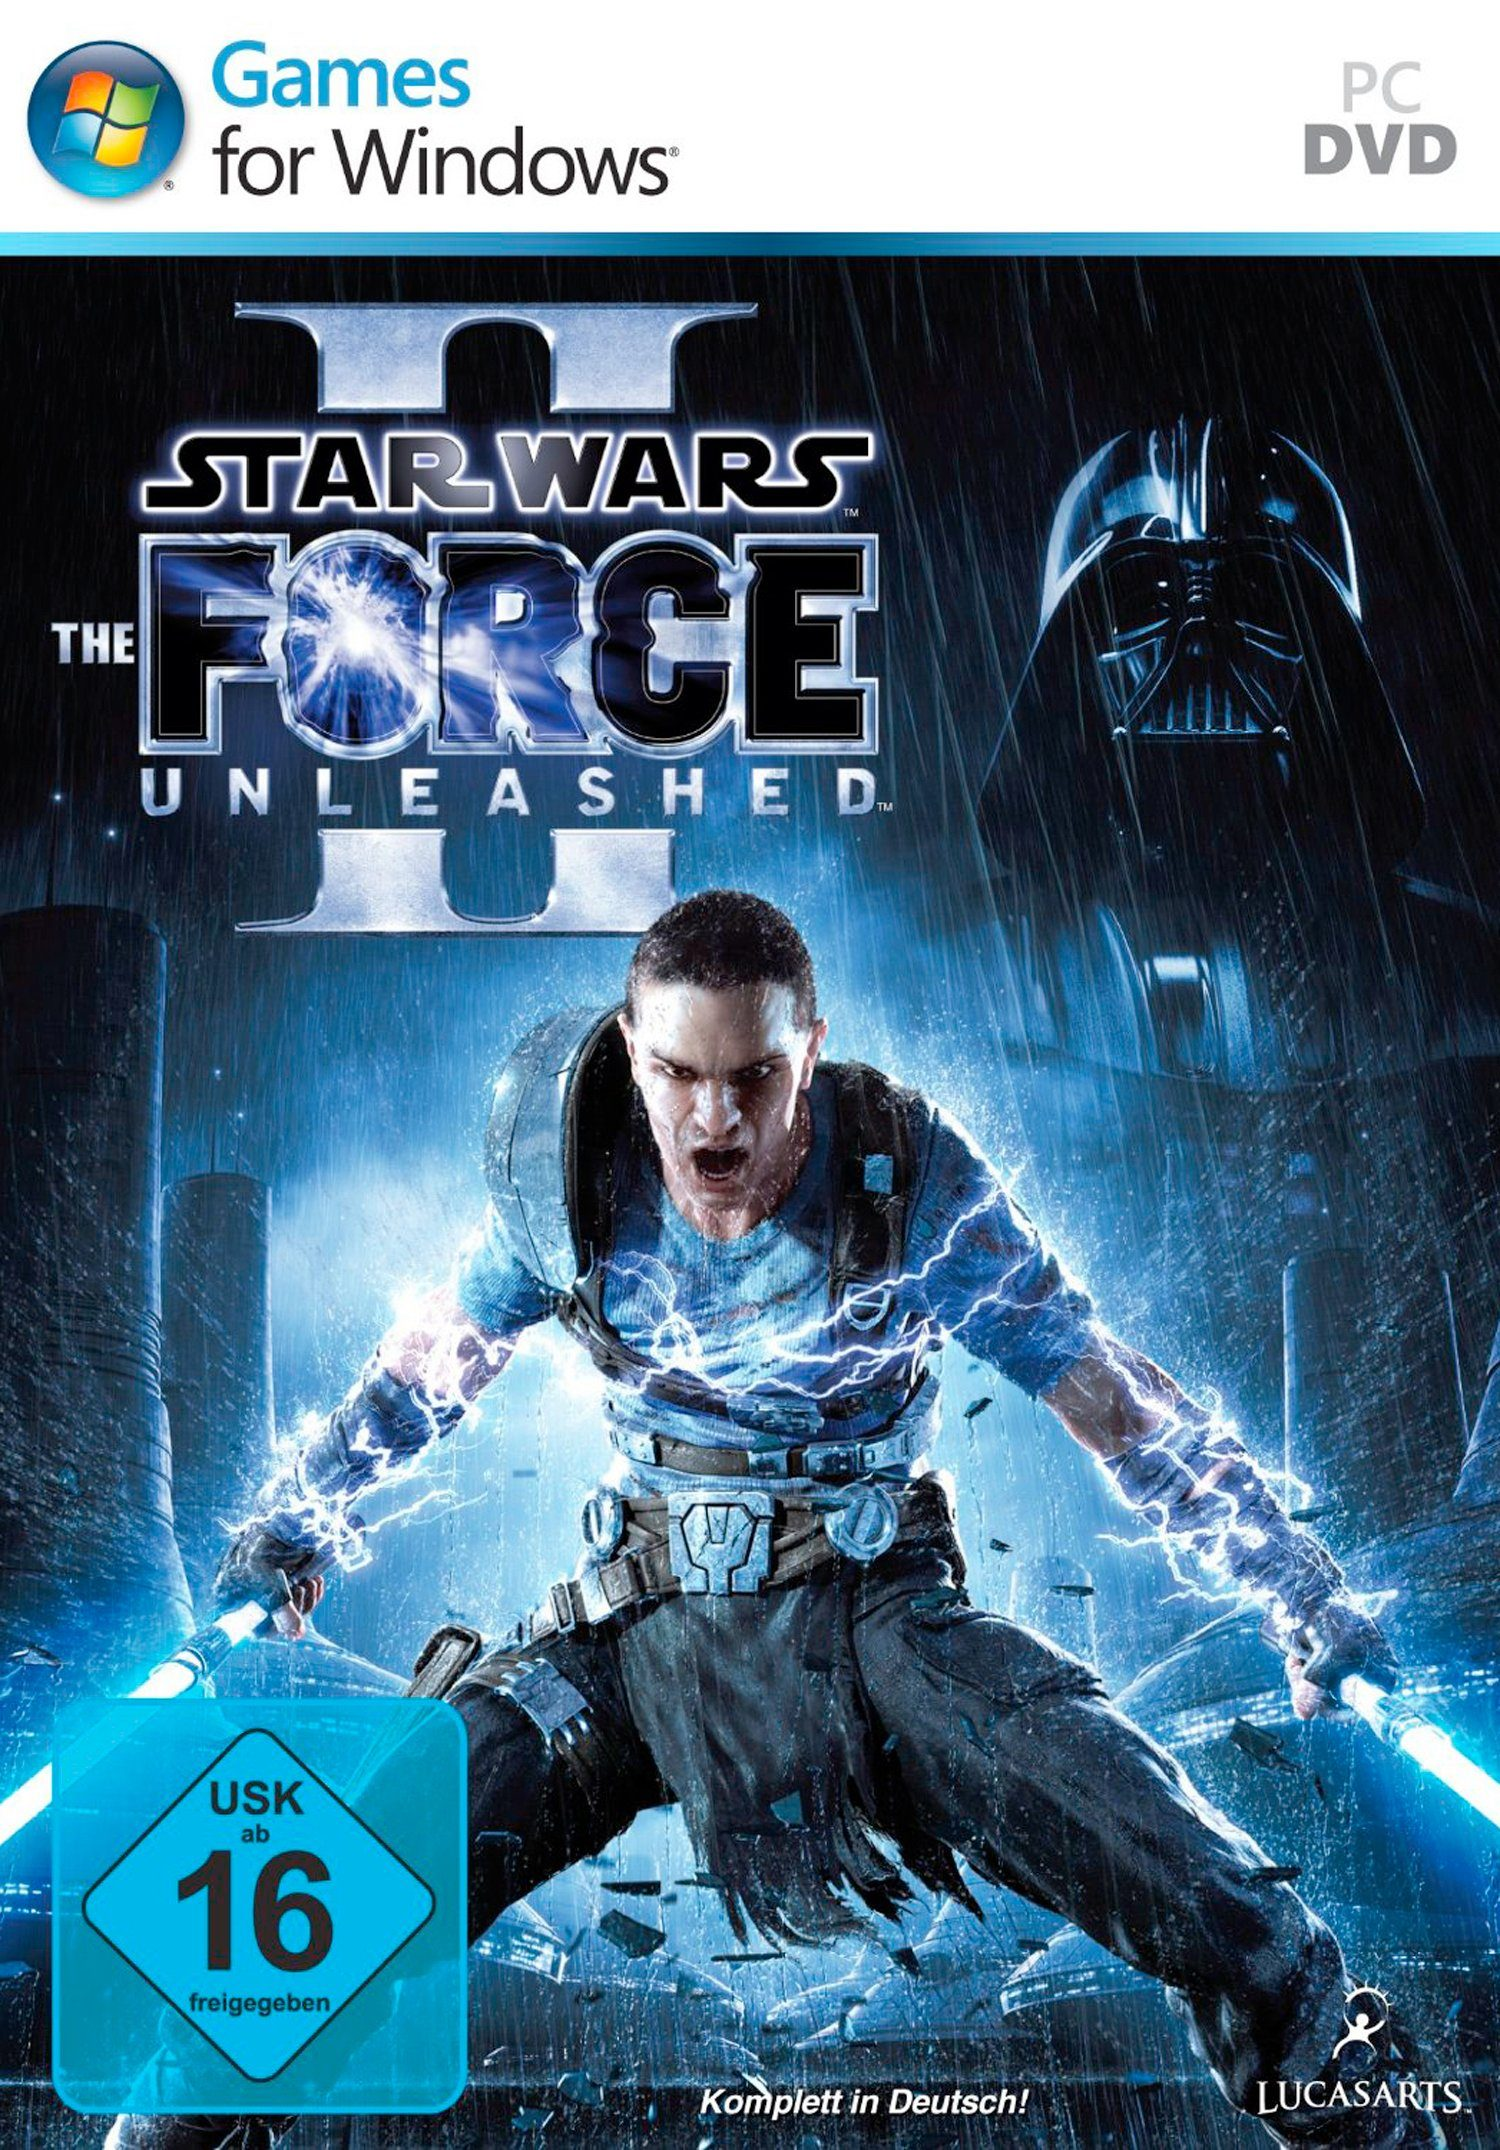 DISNEY Software Pyramide - PC Spiel »Star Wars: The Force Unleashed 2«